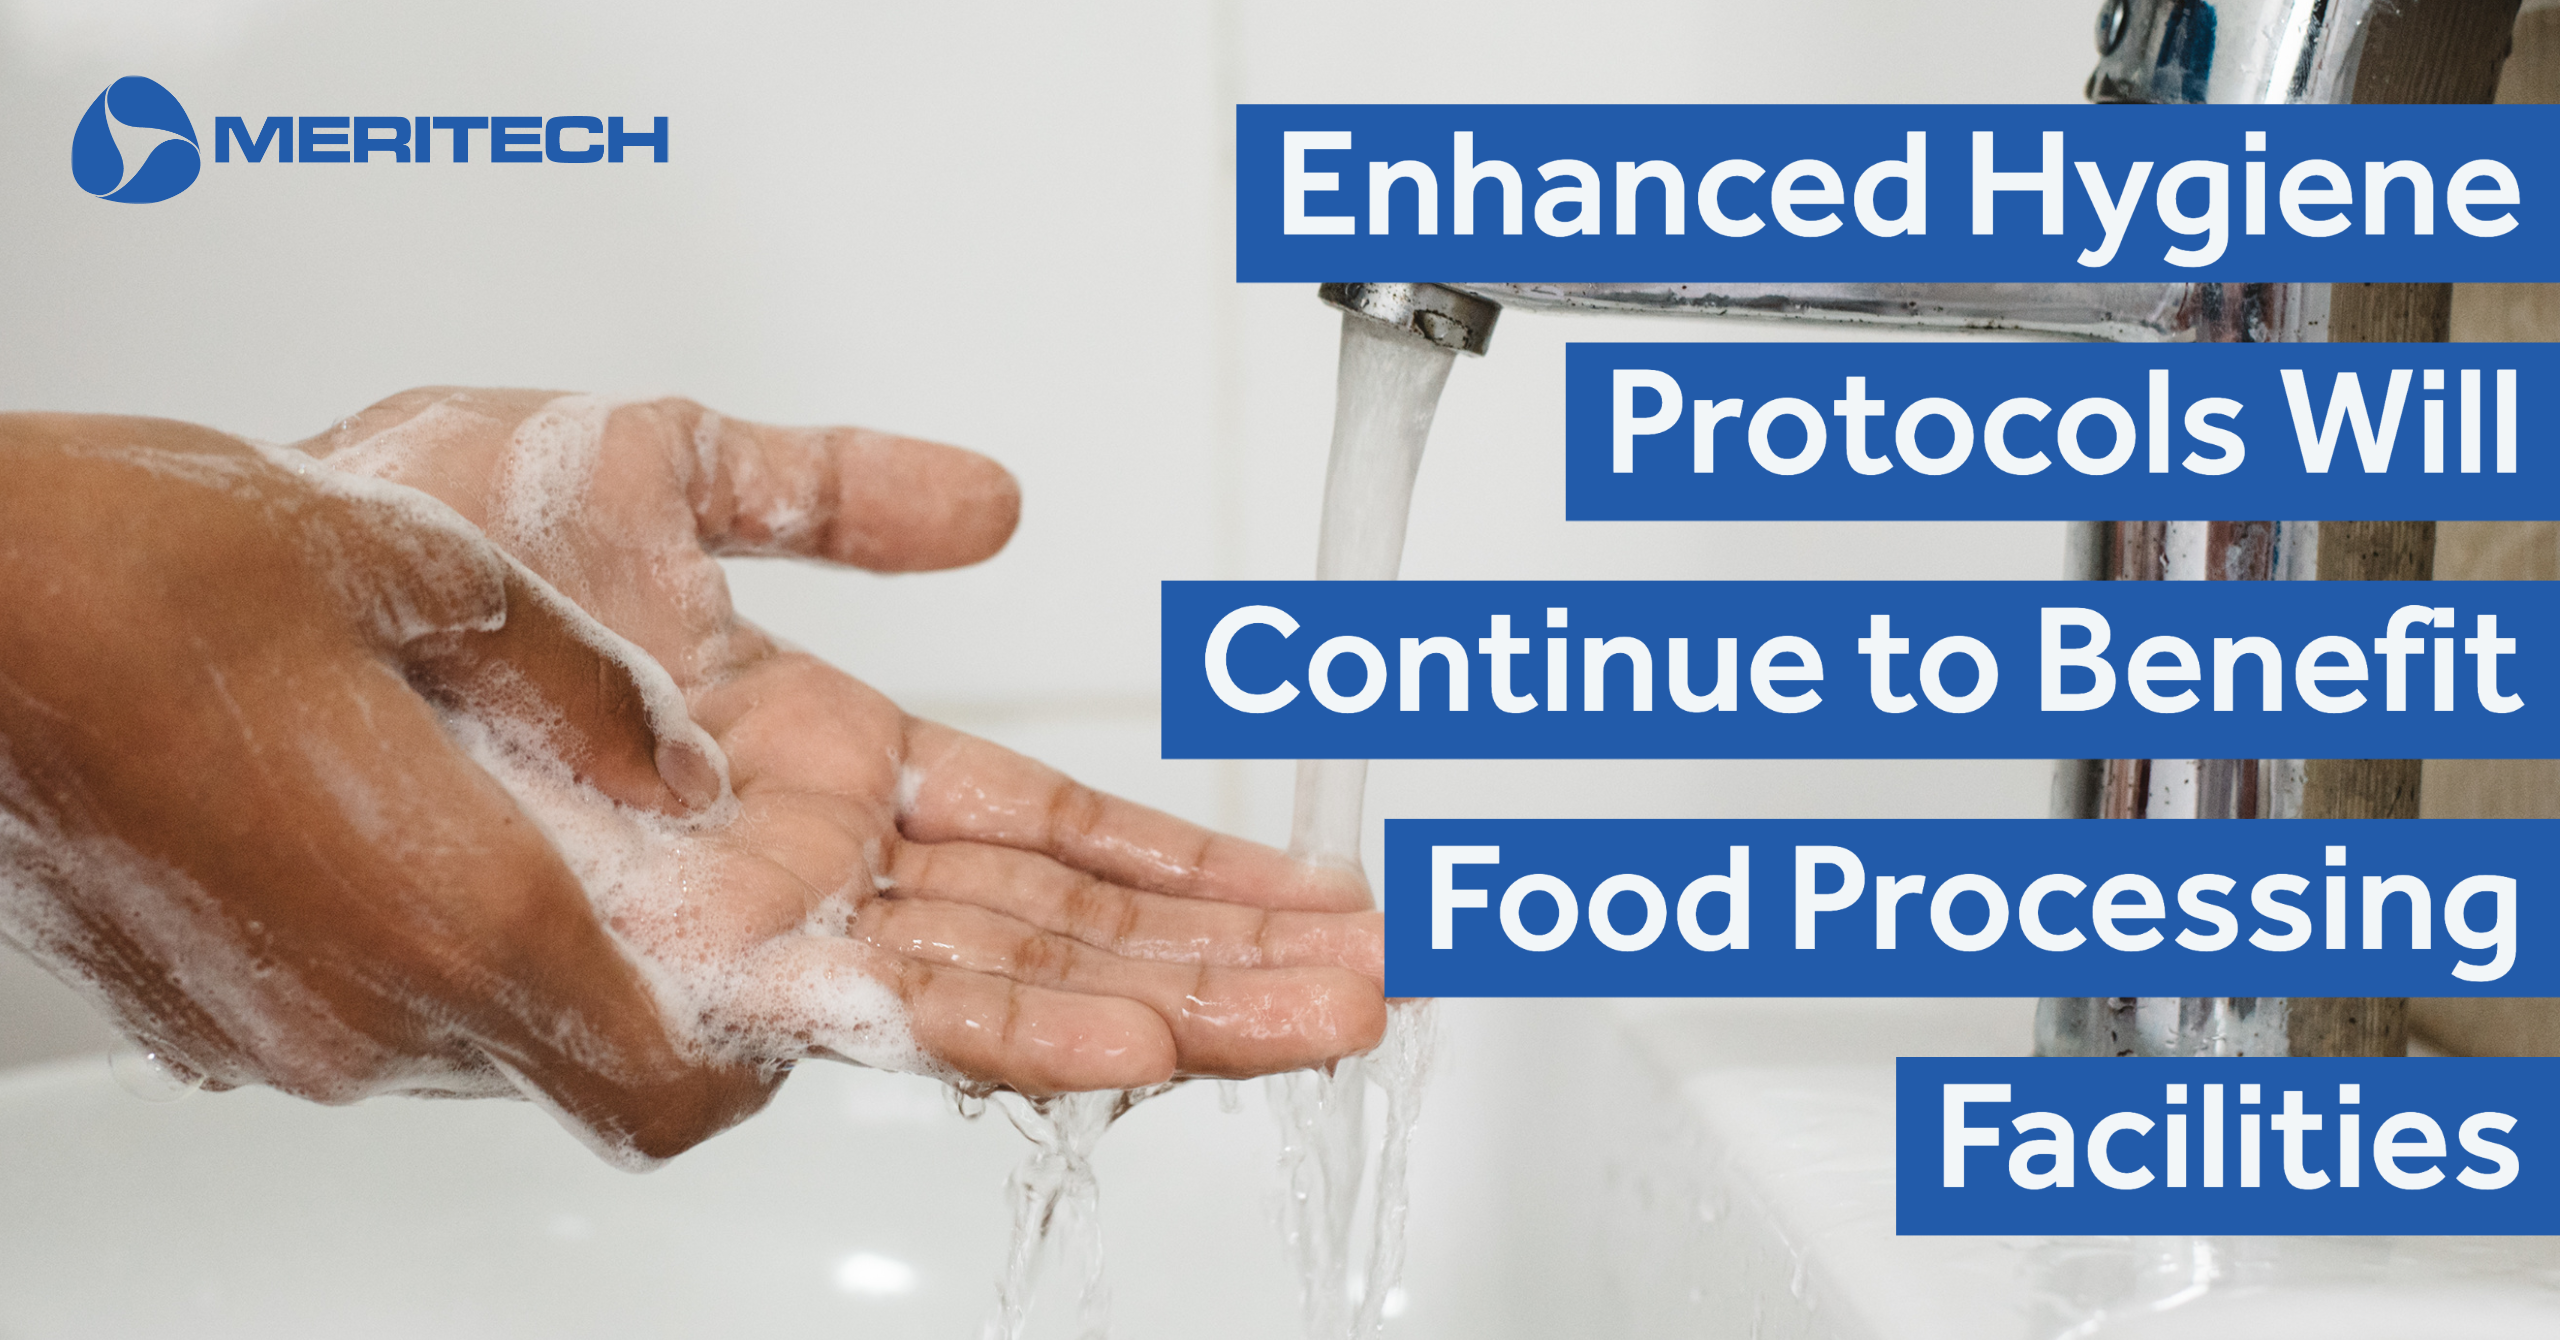 Enhanced Hygiene Protocols Will Continue to Benefit Food Processing Facilities